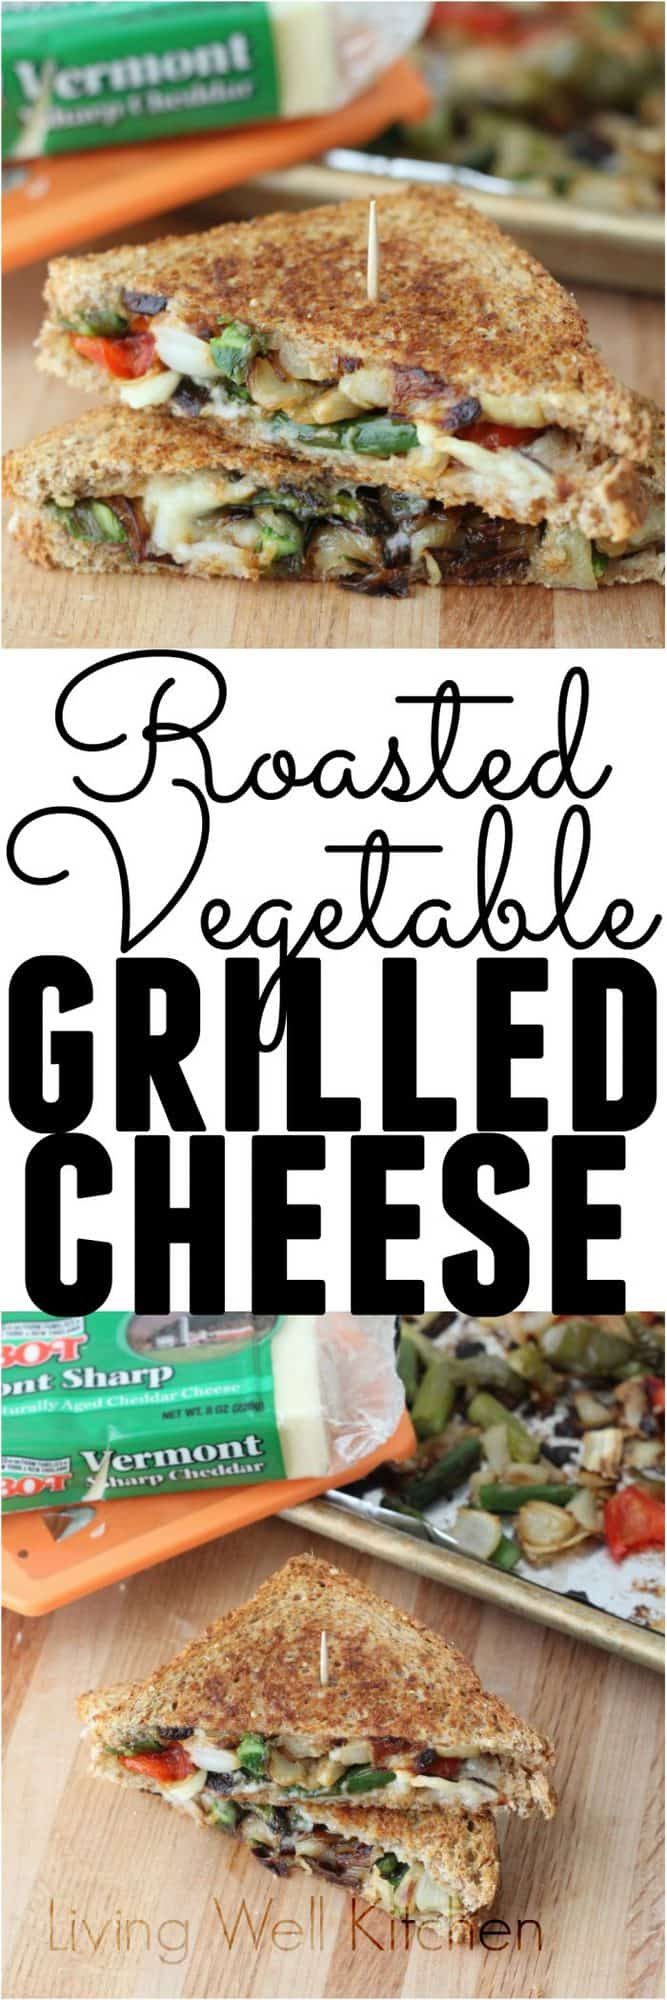 Enjoy a tasty and veggie packed grilled cheese. It's a filling and delicious way to use up any leftover roasted vegetables. This Roasted Vegetable Grilled Cheese recipe will satisfy any comfort food craving. Perfect for a vegetarian dinner or lunch